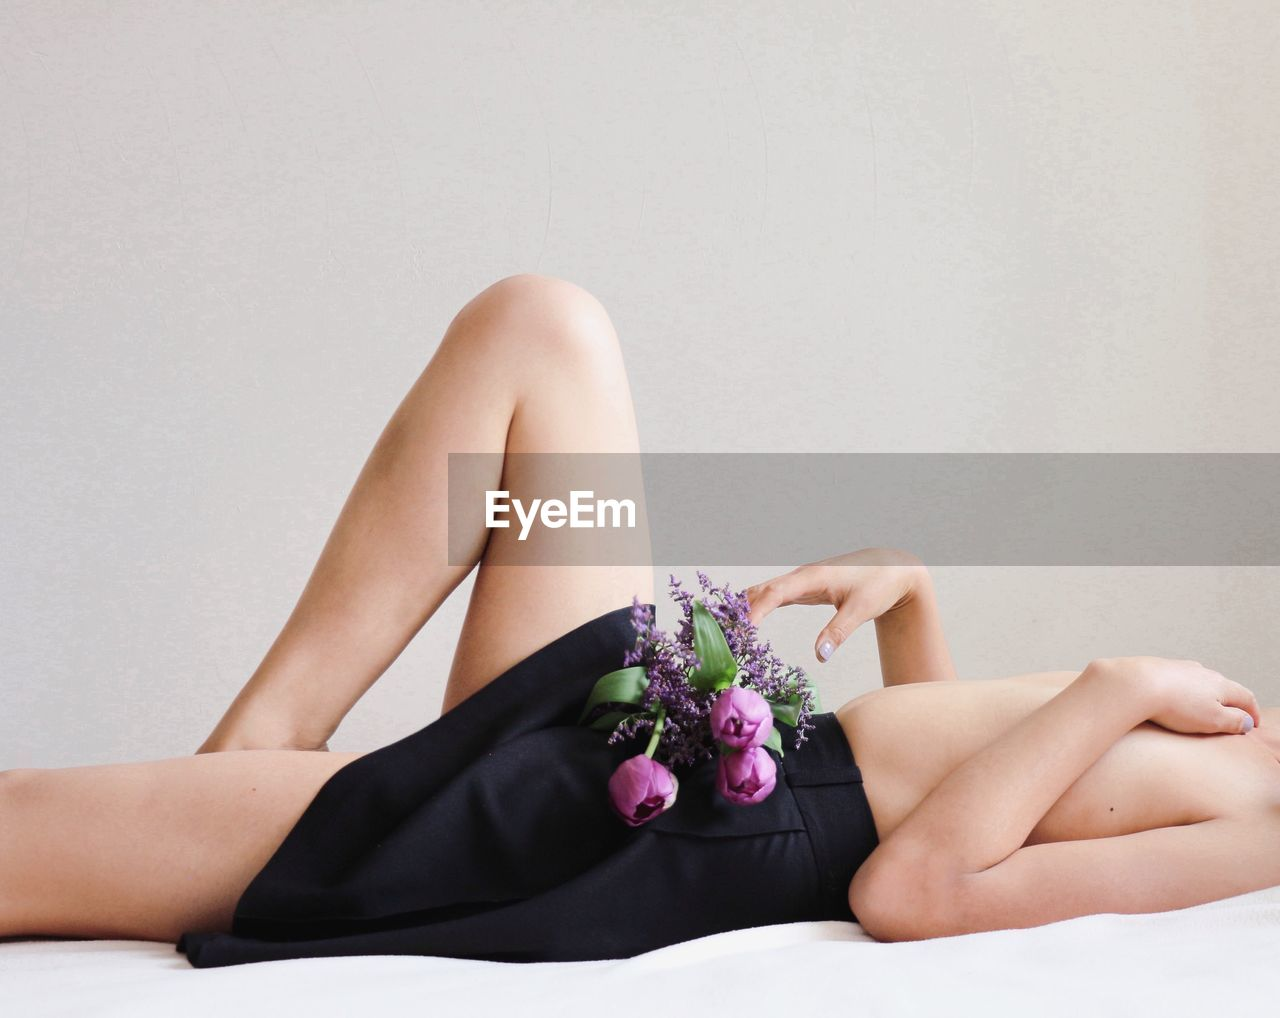 Midsection of topless woman lying on bed with flowers against beige background